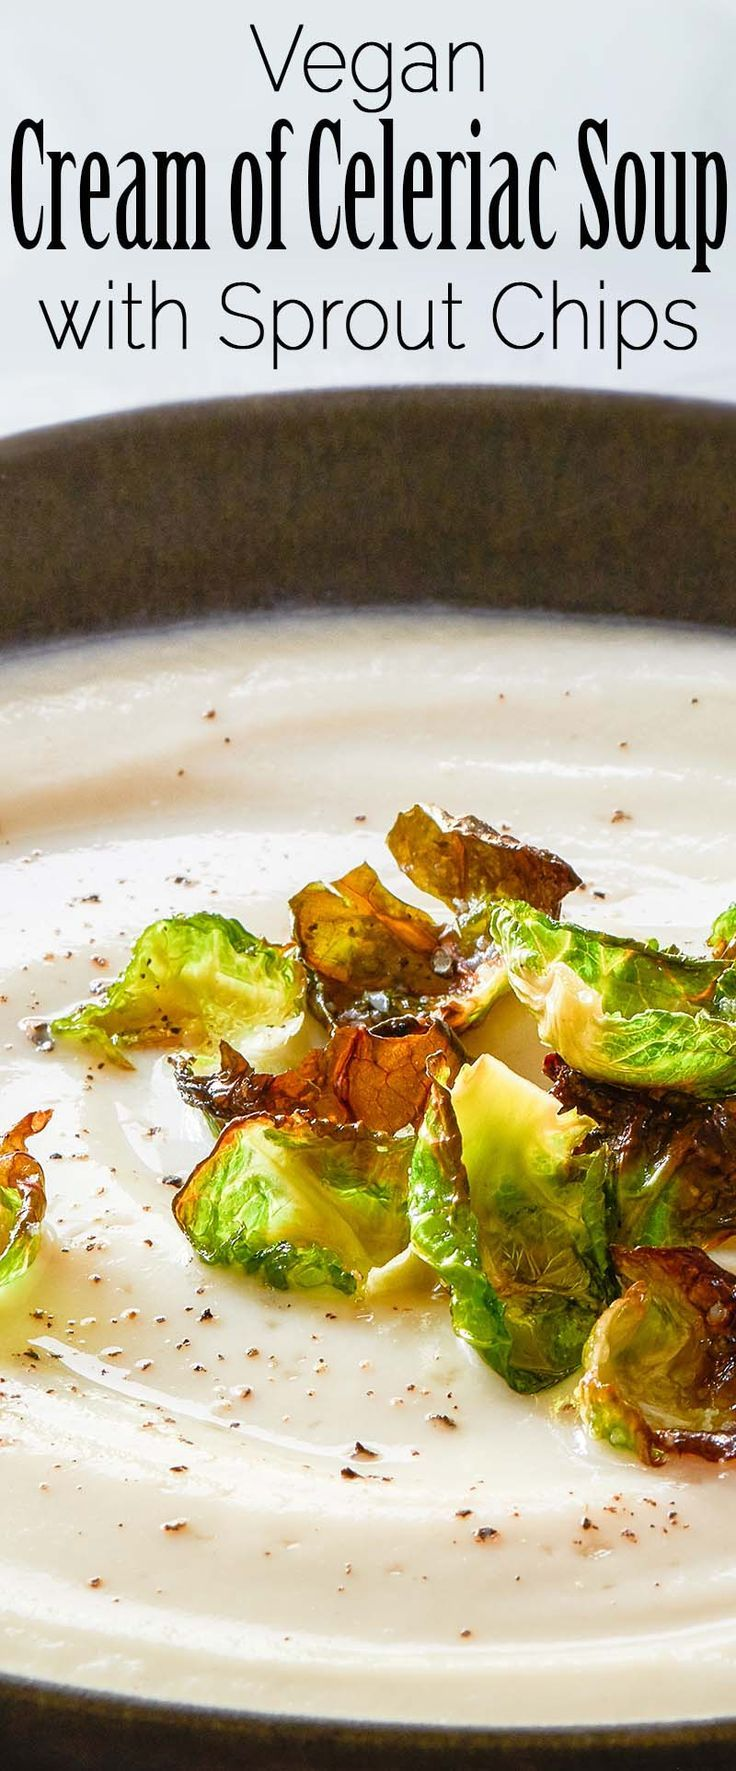 Cream Of Celeriac Soup with Brussels Sprouts Chips